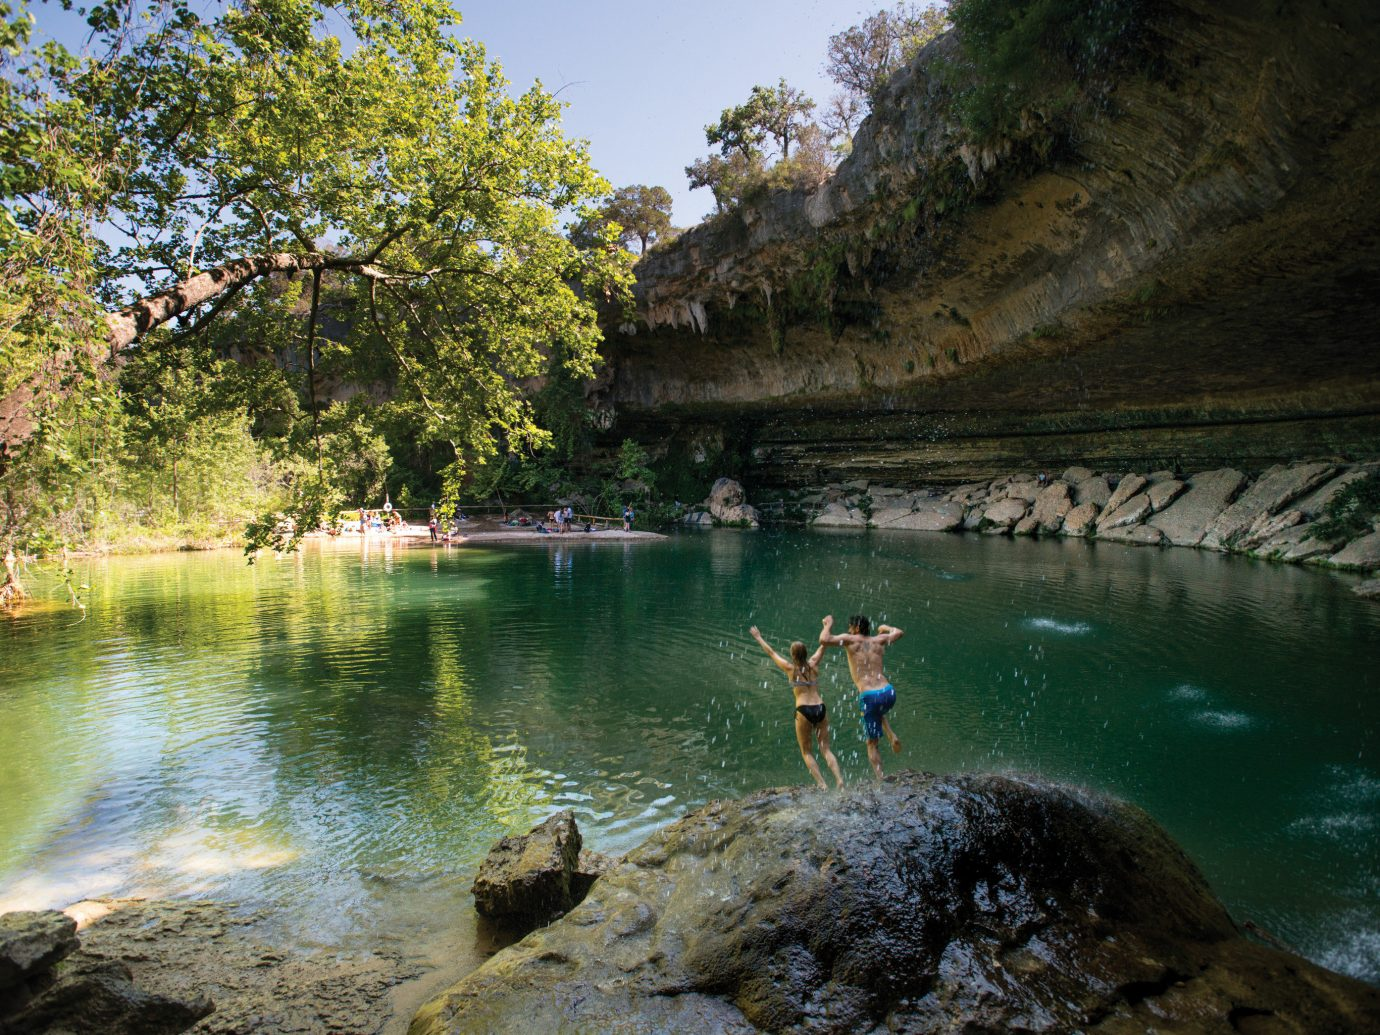 People jumping into a springs in Austin, TX